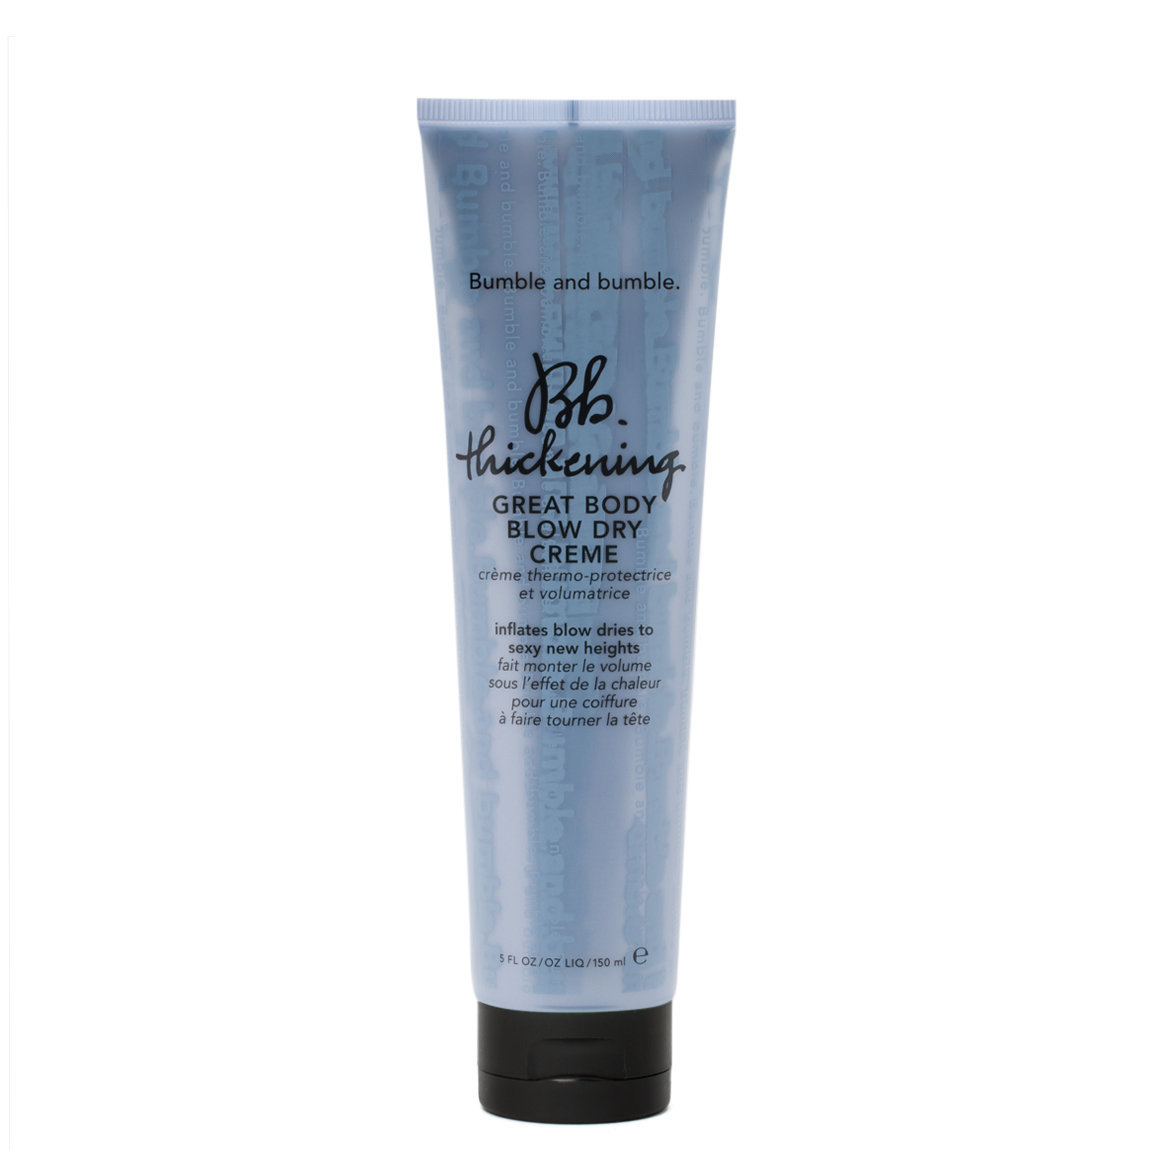 Bumble and bumble. Thickening Great Body Blow Dry Creme 5 oz alternative view 1 - product swatch.